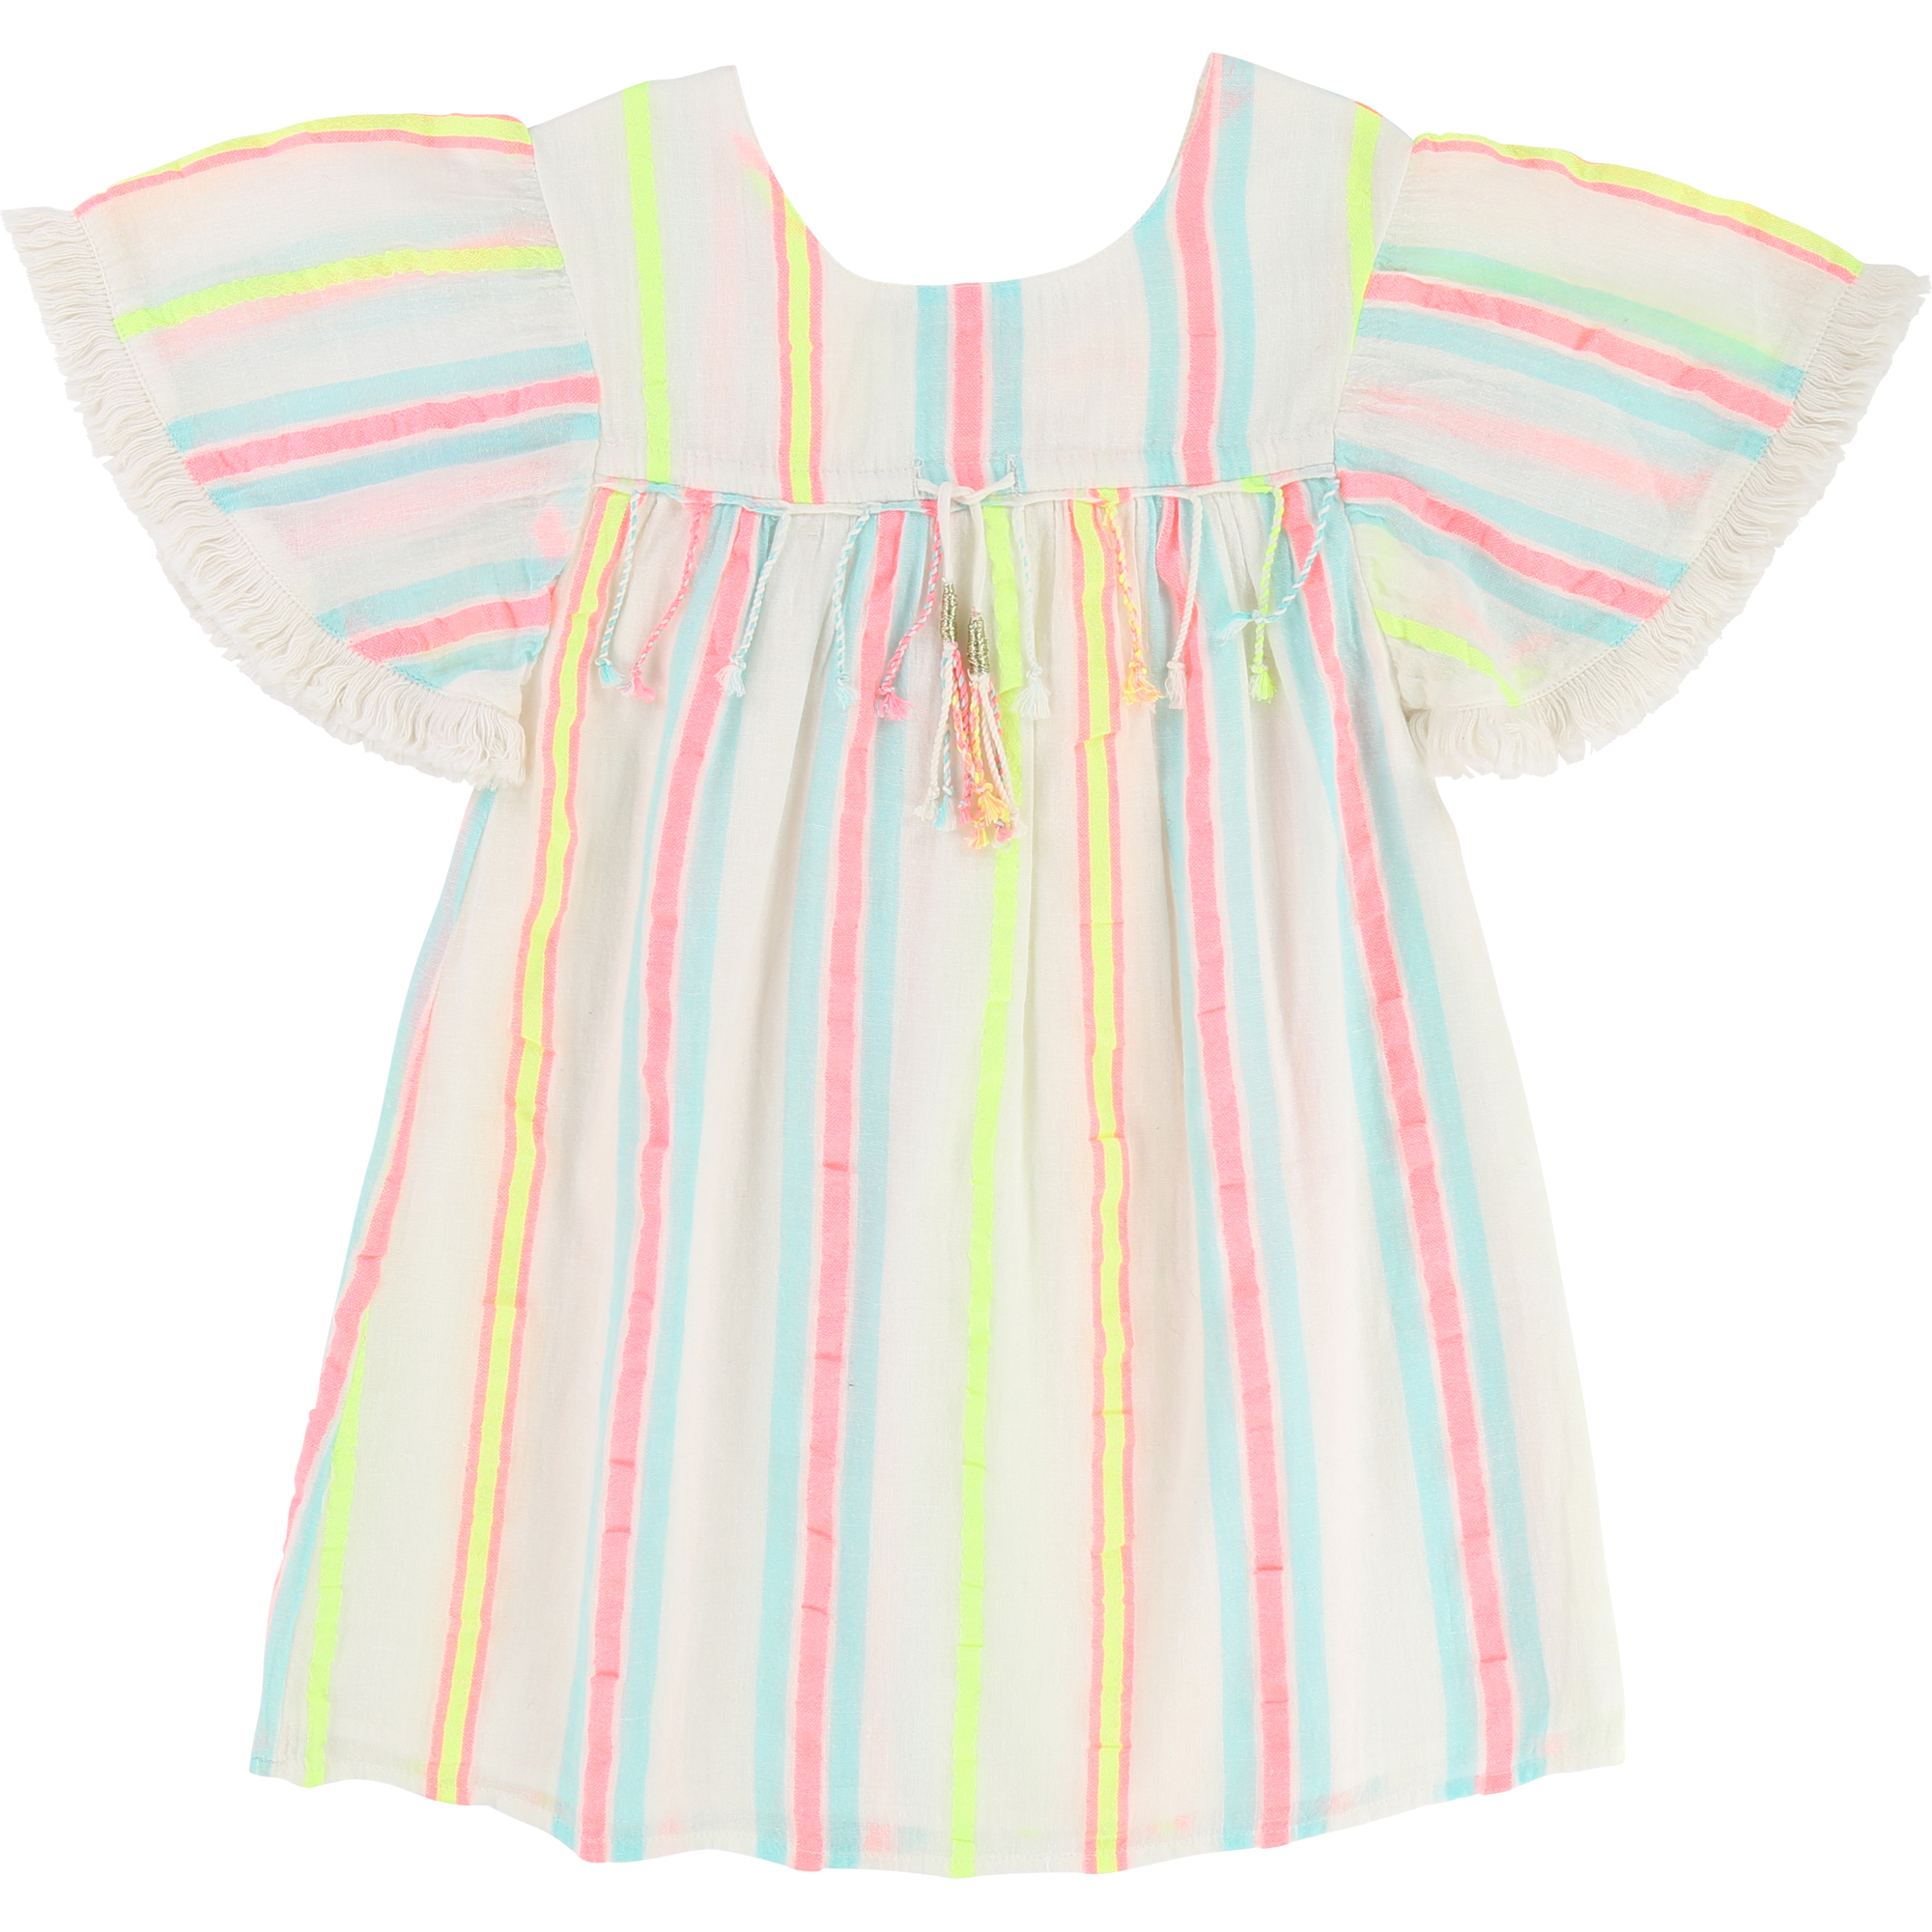 Billieblush  - PARTY STRAW YELLOW DRESS - Clothing